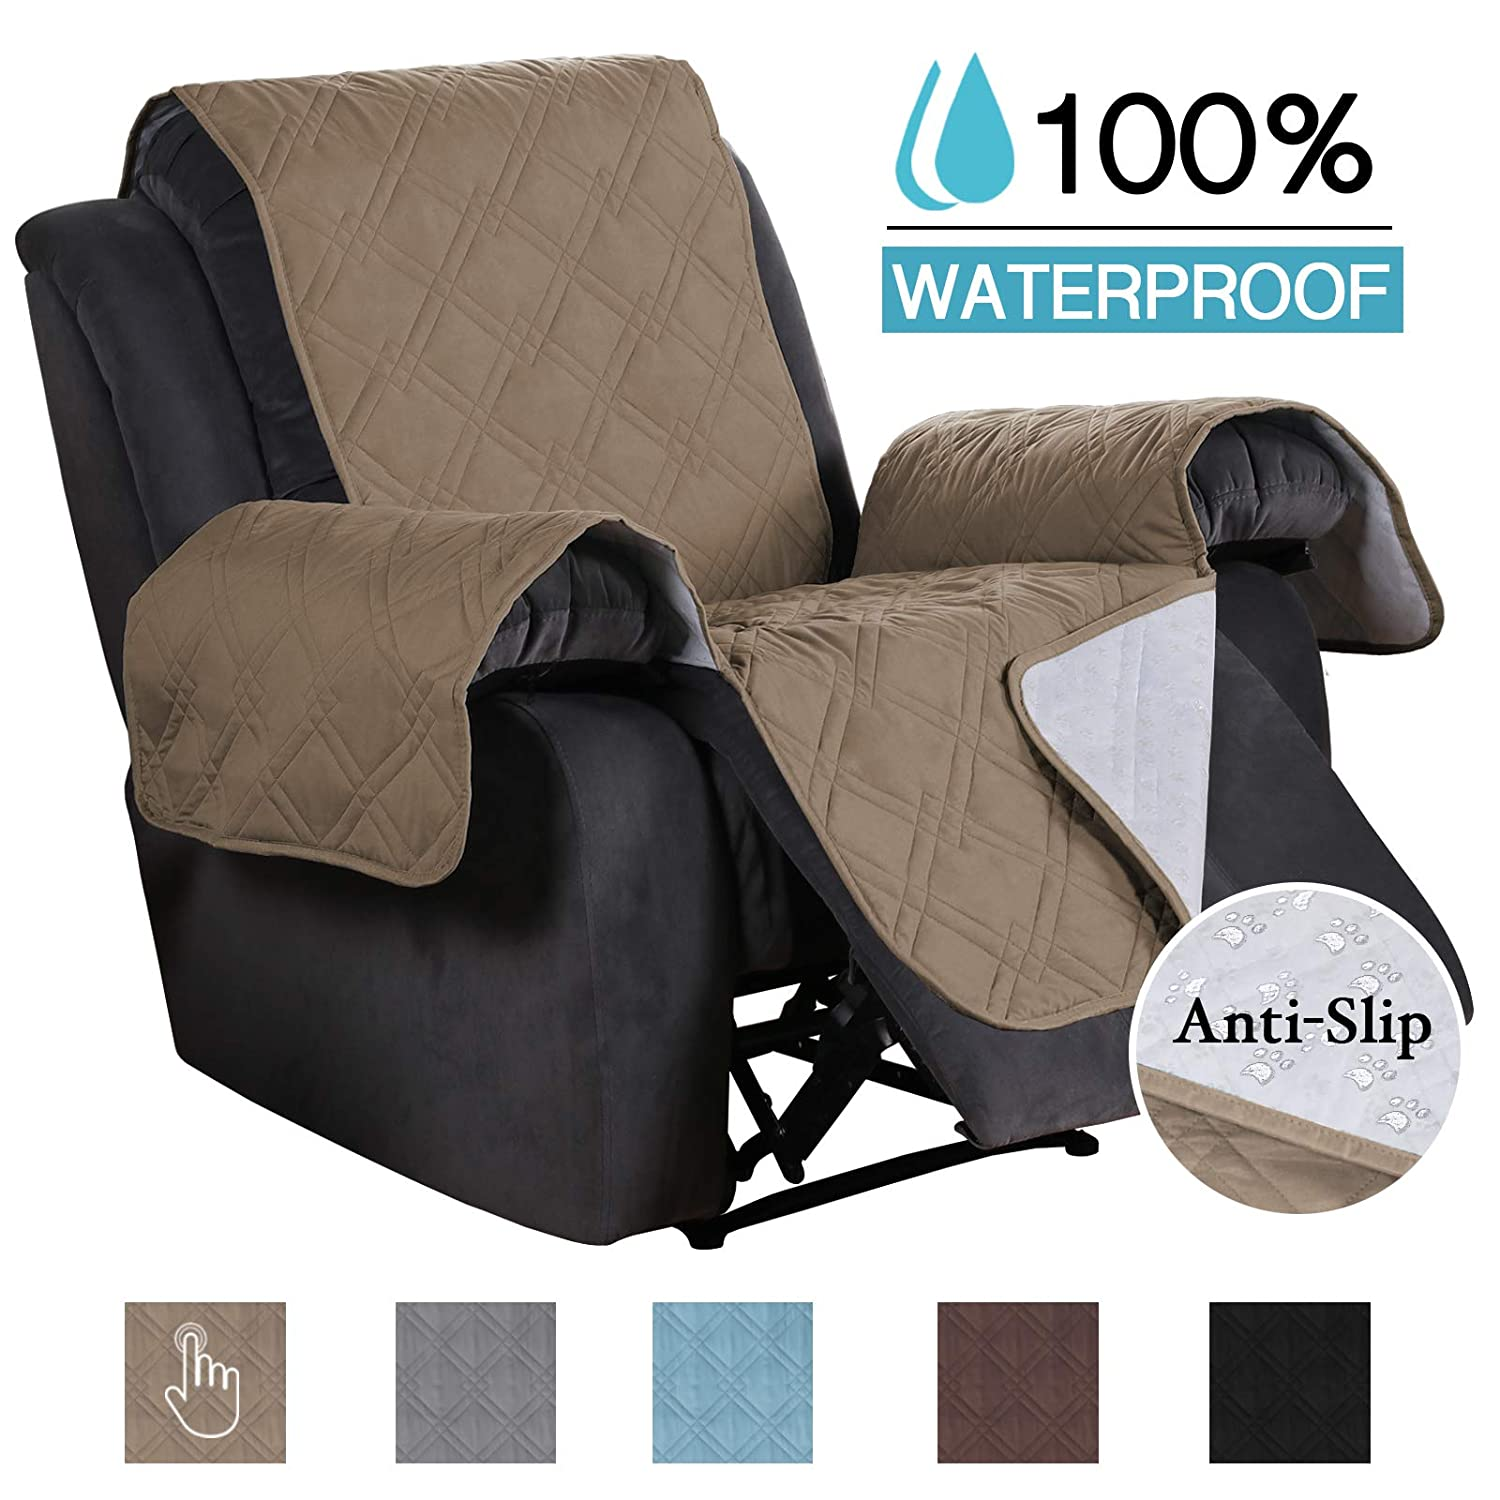 Fabulous Furniture Sofa Covers For Oversized Recliner Quilted 100 Waterproof Recliner Chair Cover For Living Room Non Slip Sofa Protector For Oversize Larger Customarchery Wood Chair Design Ideas Customarcherynet